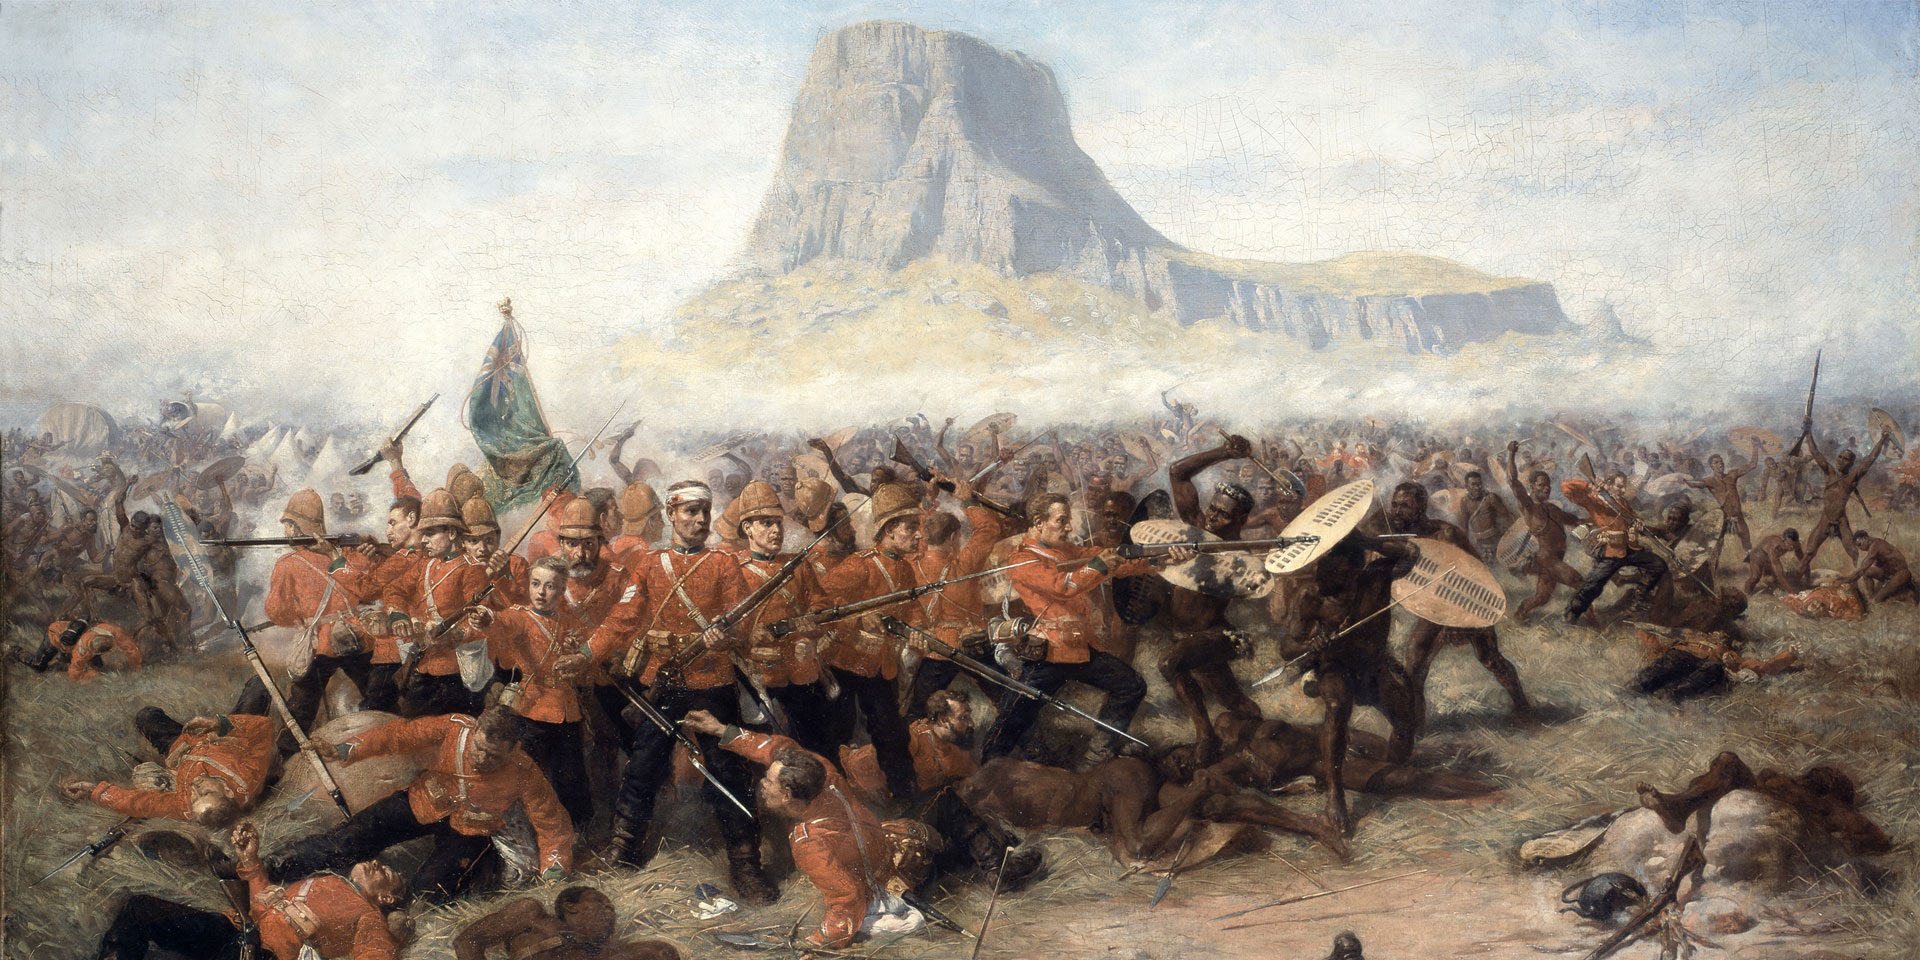 The Battle of Isandlawana by Charles Edwin Fripp, 1885